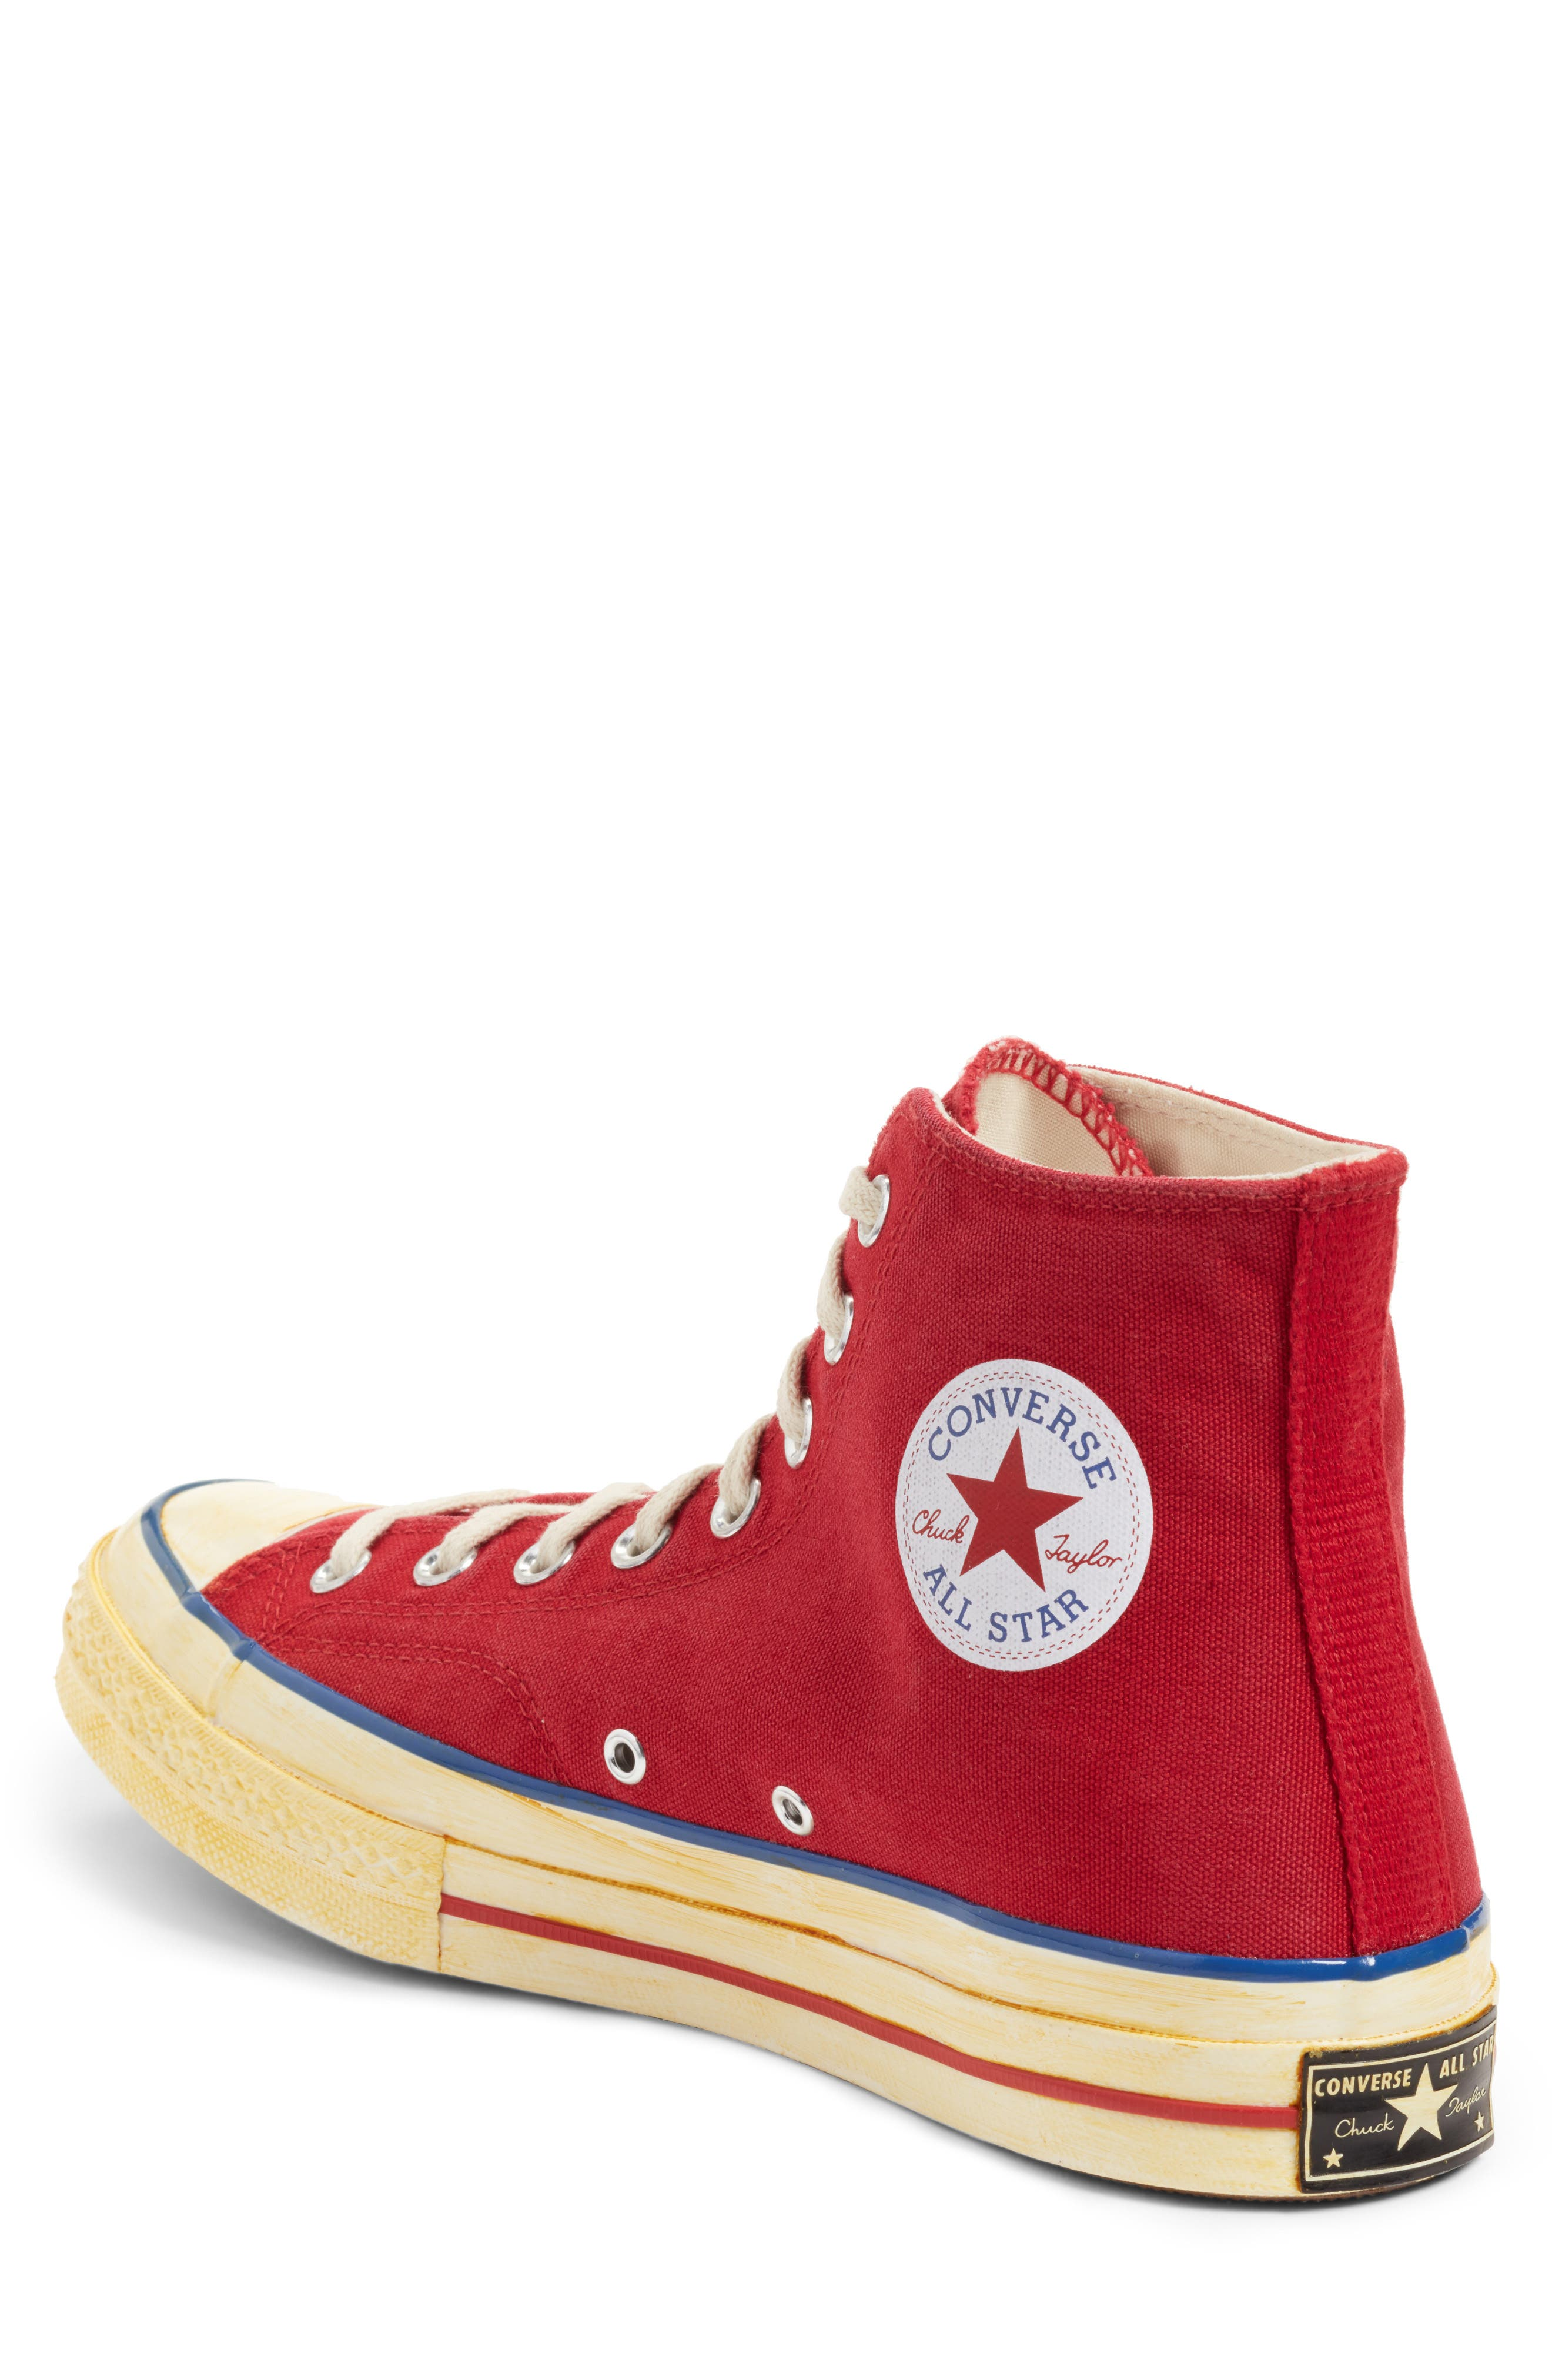 Chuck Taylor<sup>®</sup> All Star<sup>®</sup> 70 High Top Sneaker,                             Alternate thumbnail 2, color,                             608